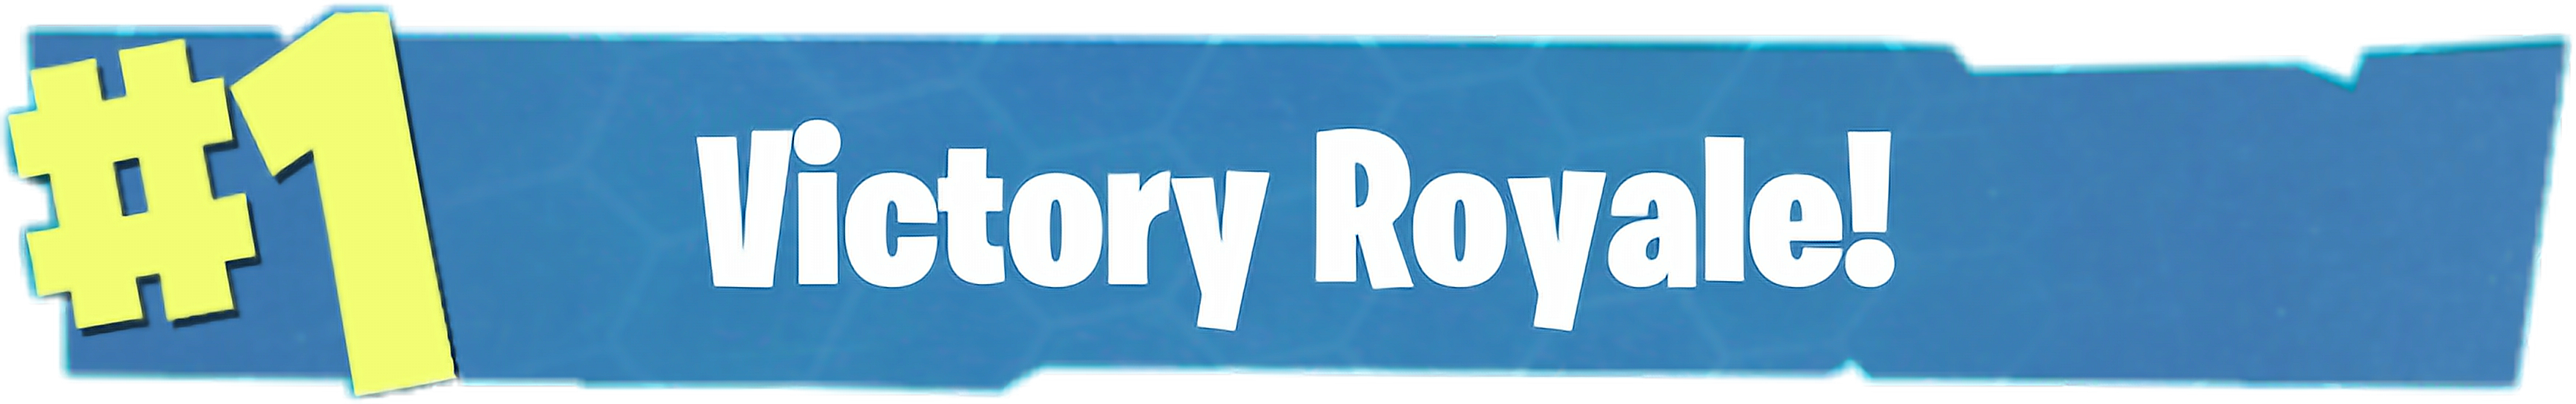 Victory Royale Winner Background image #47375